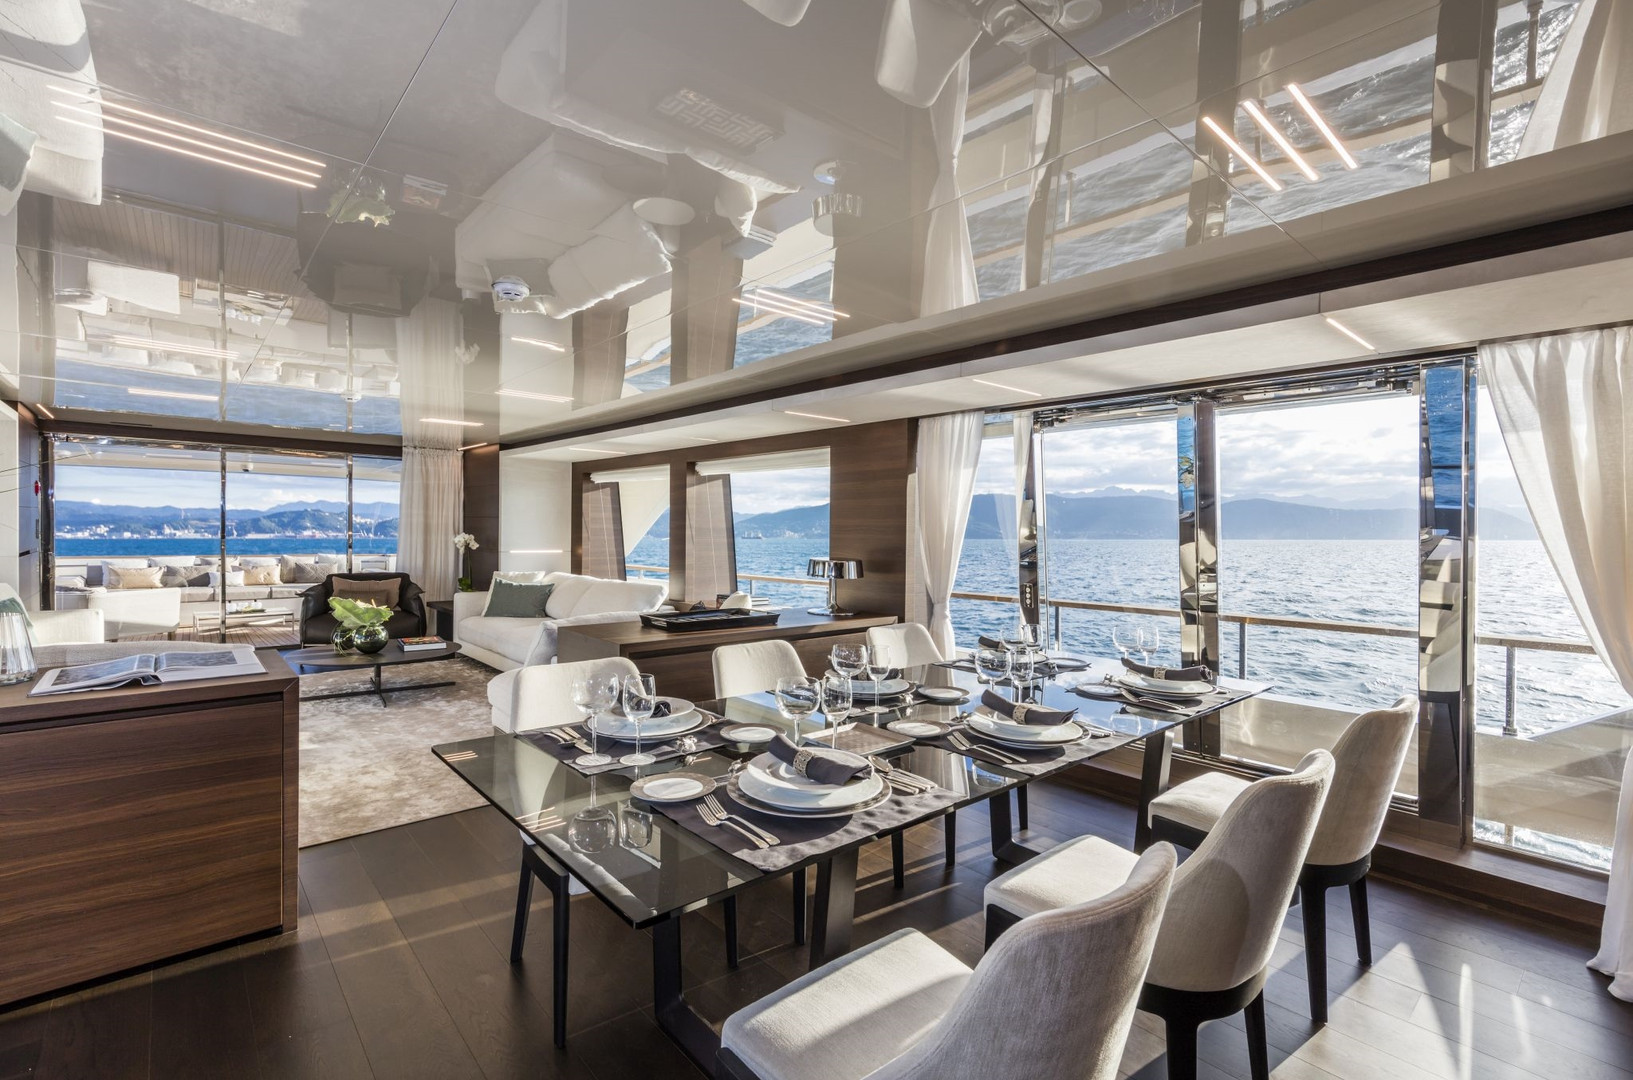 Yacht DECEMBER SIX -  Main deck, dining and saloon interior